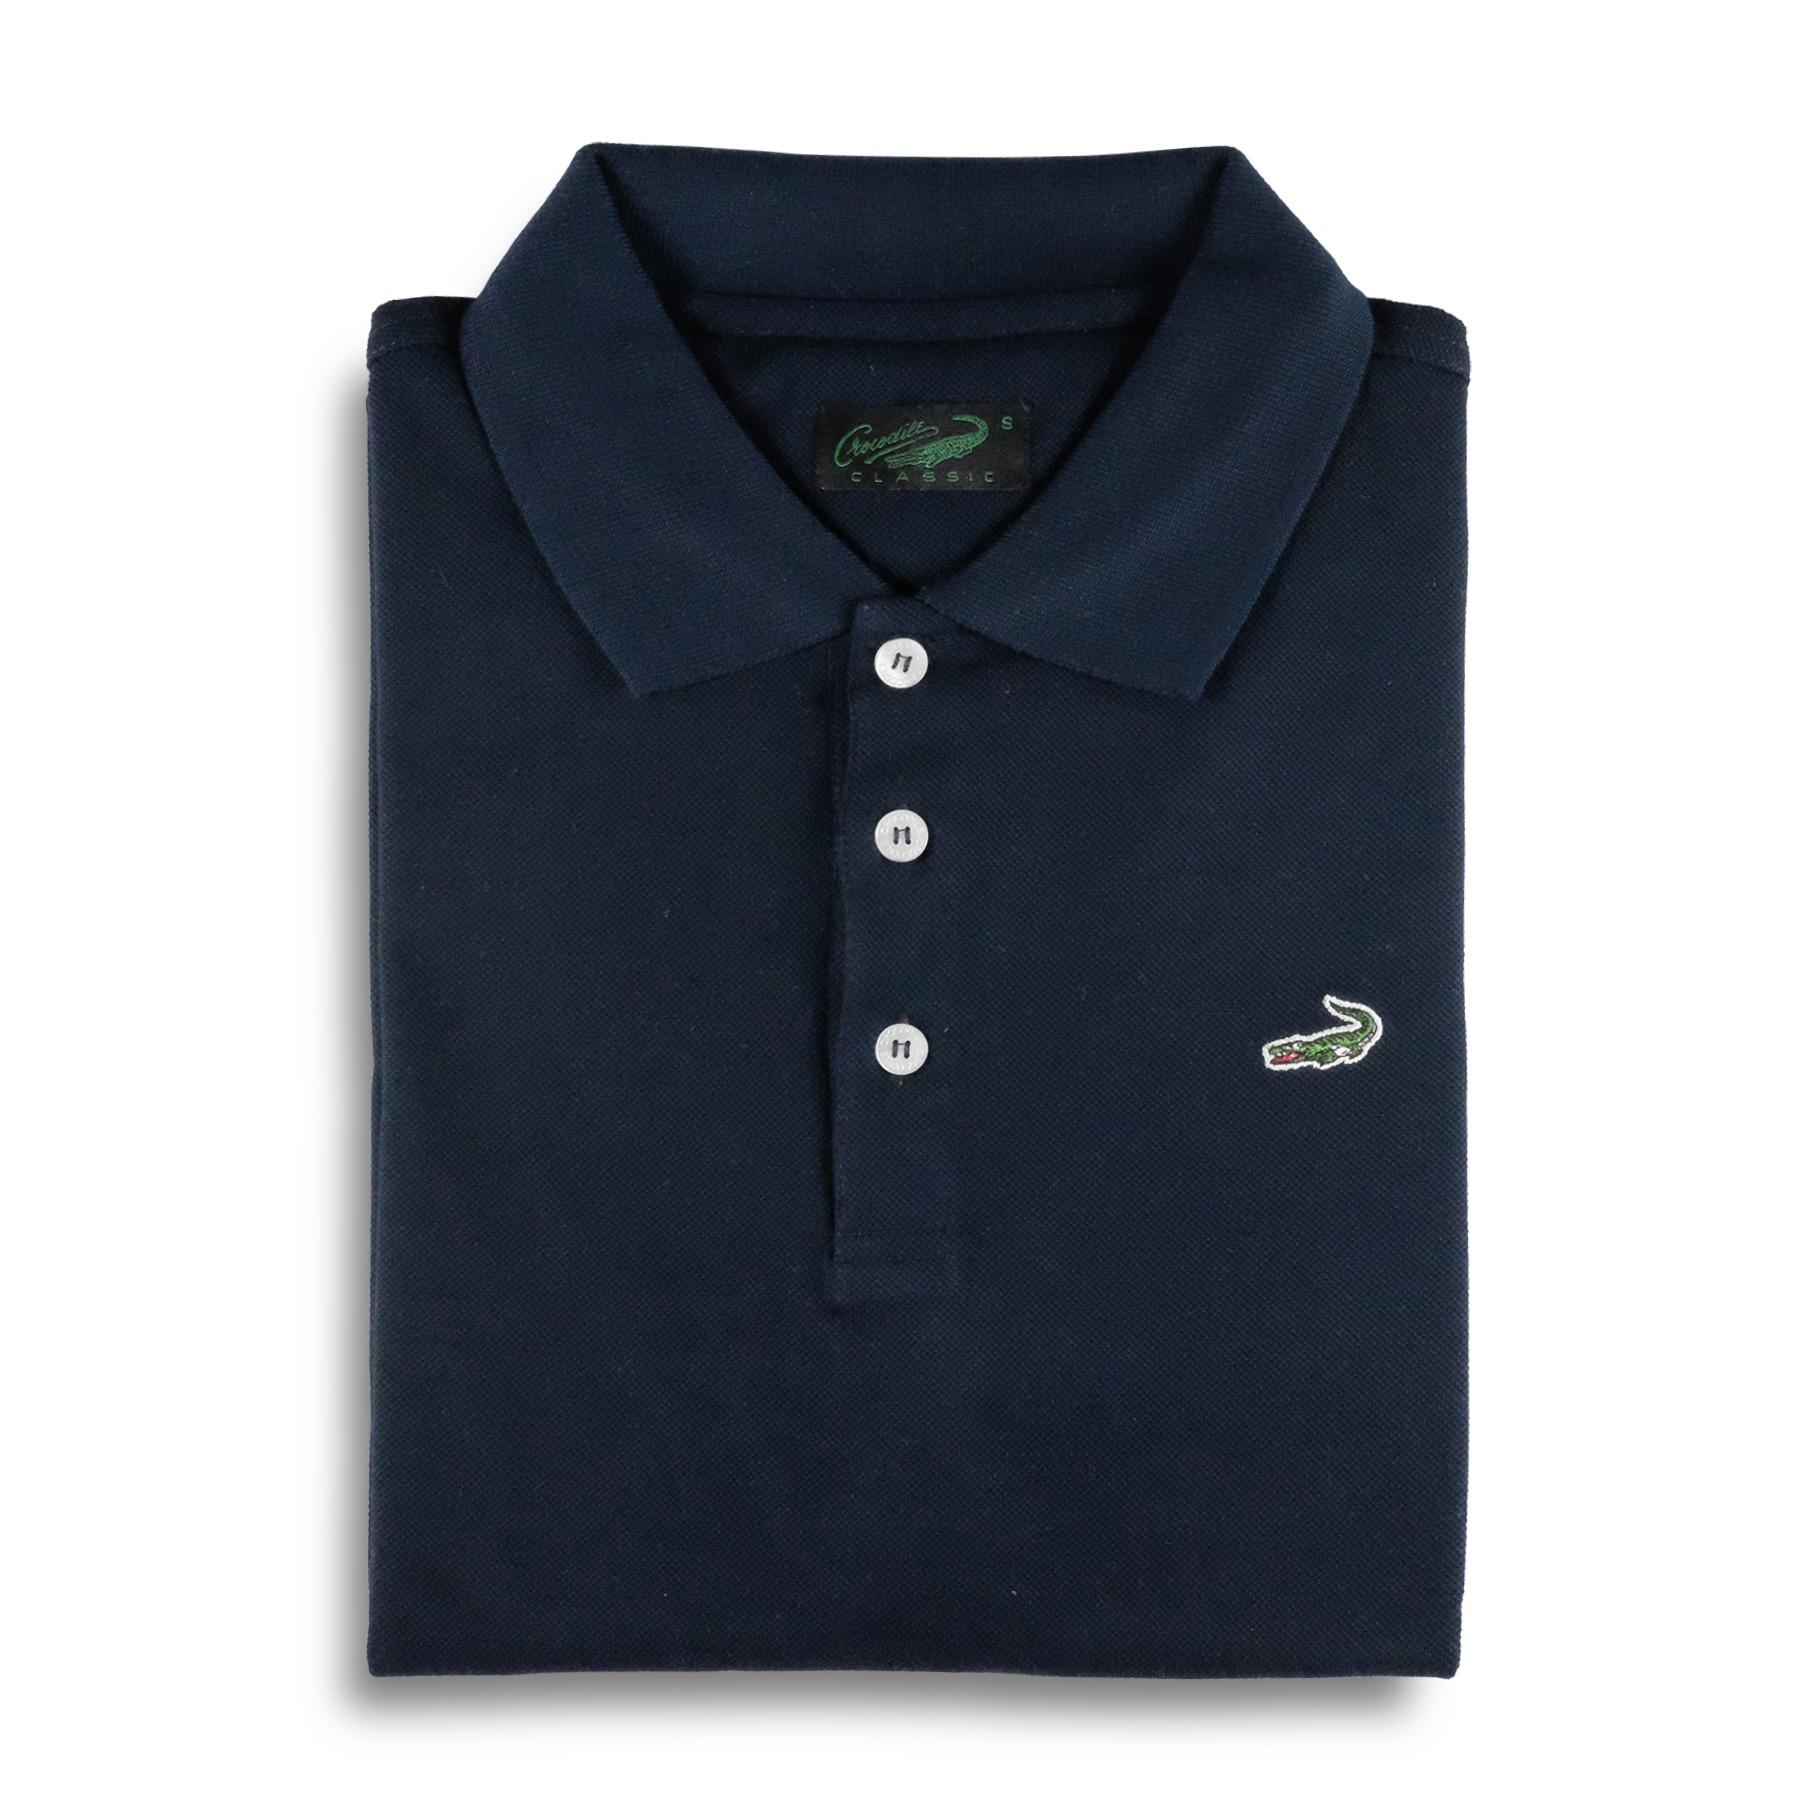 Diskon Clas Dark Navy Baju Pria Crocodile Men Polo Shirt Bahan Katun 100 Cotton Crocodile